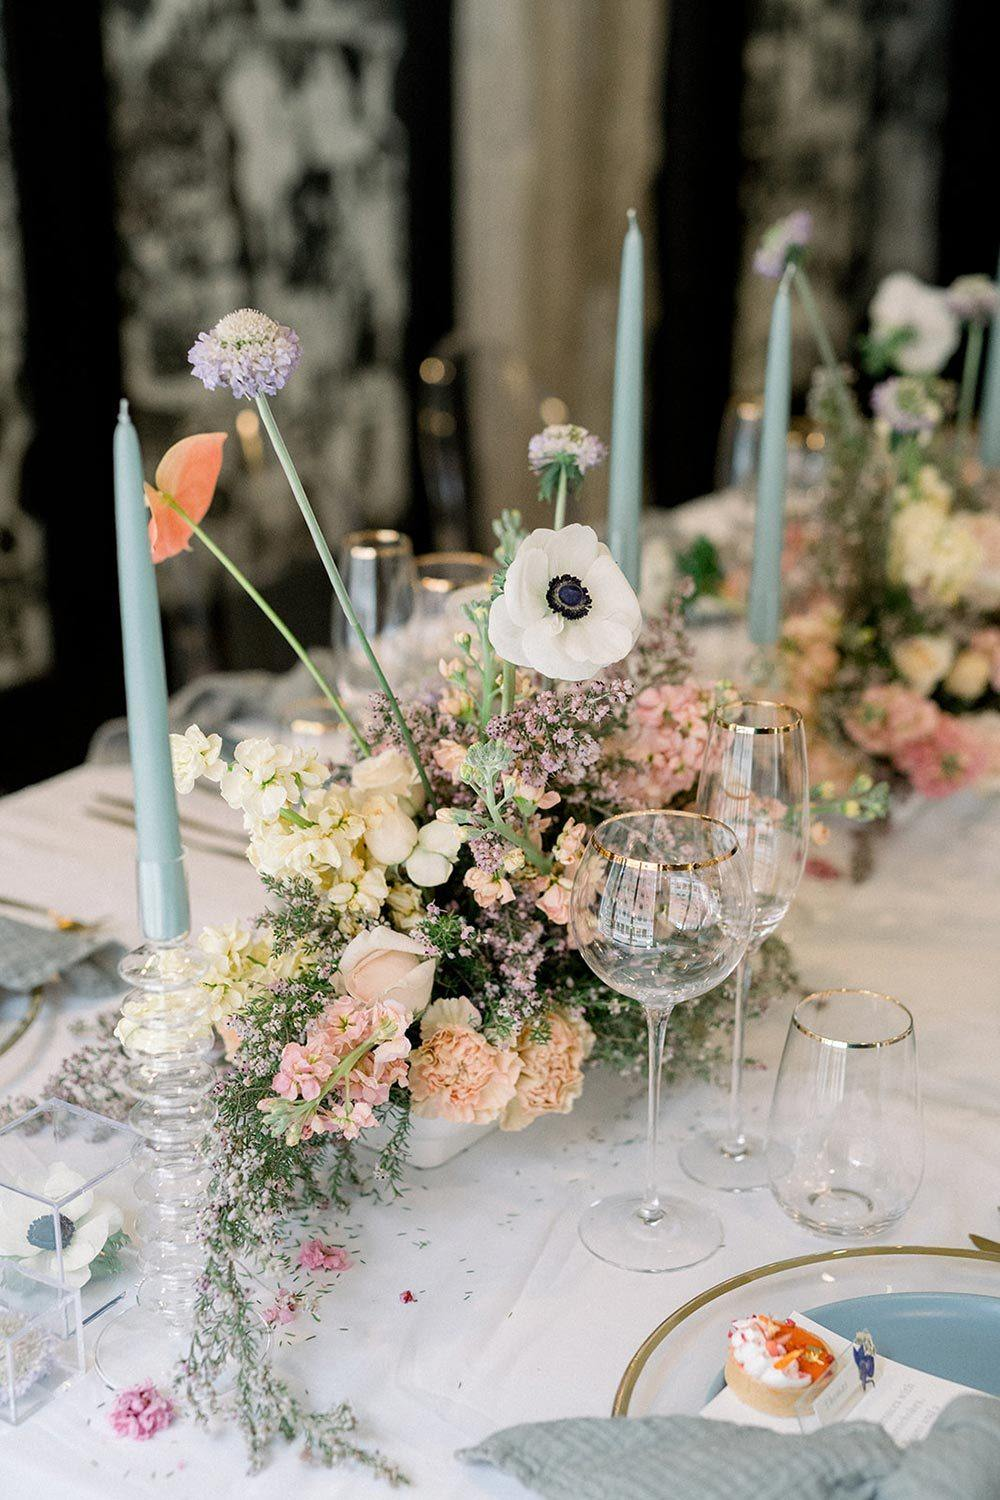 blue and peach wedding centerpiece with modern tabletop decor